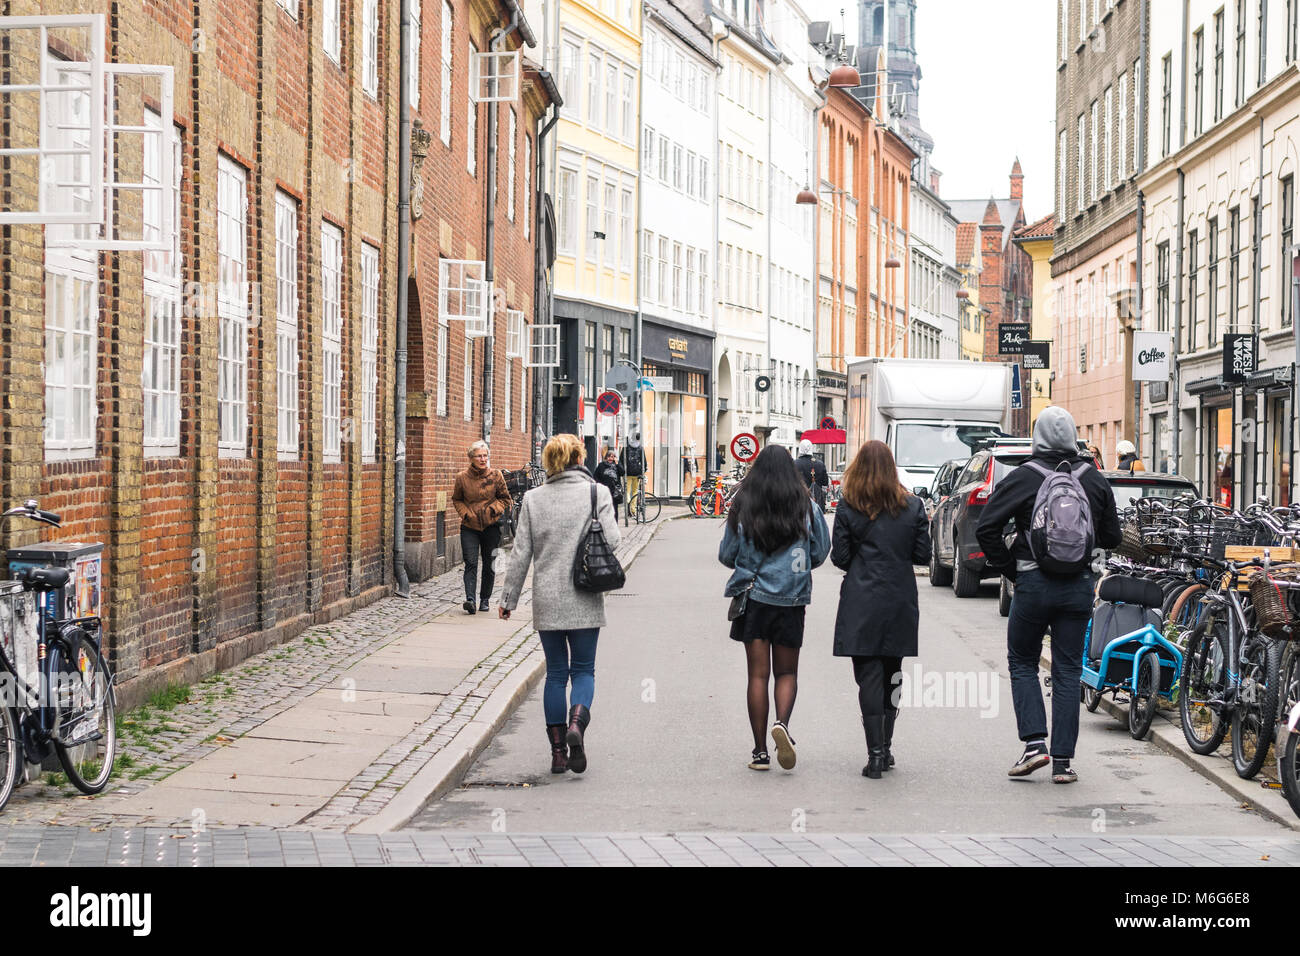 Copenhagen - October 17, 2016: Some passers by on Krystalgade street with a lot of bicycles parked nearby. Stock Photo